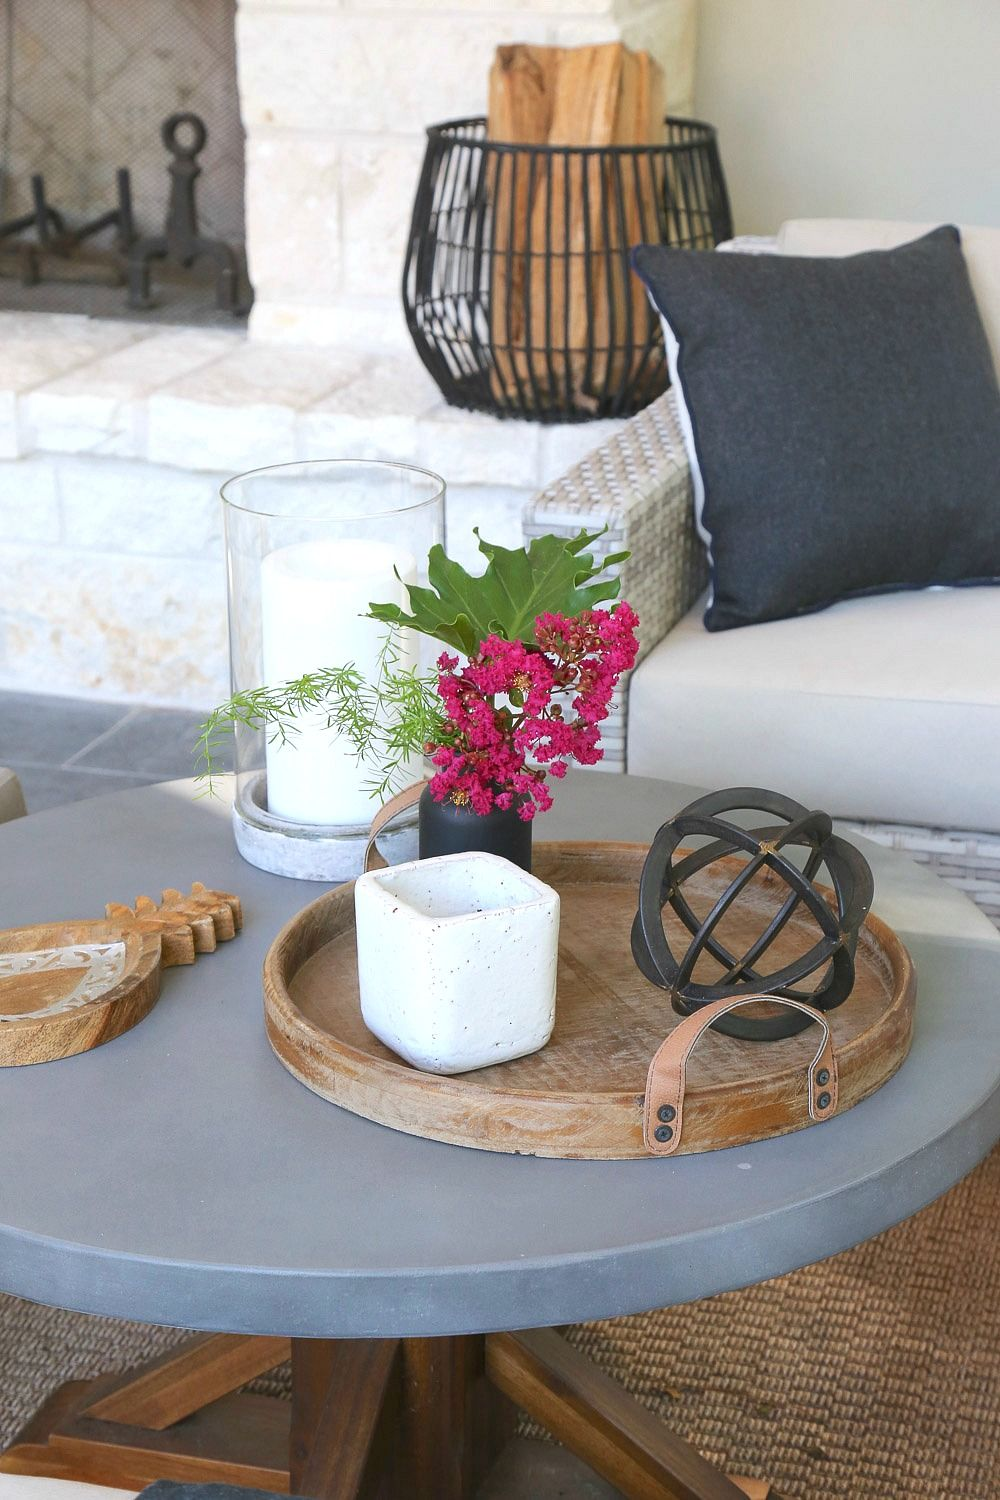 5 Minute Outdoor Decorating Tips And Tricks Decorating Coffee Tables Outdoor Coffee Table Decor Table Decorations